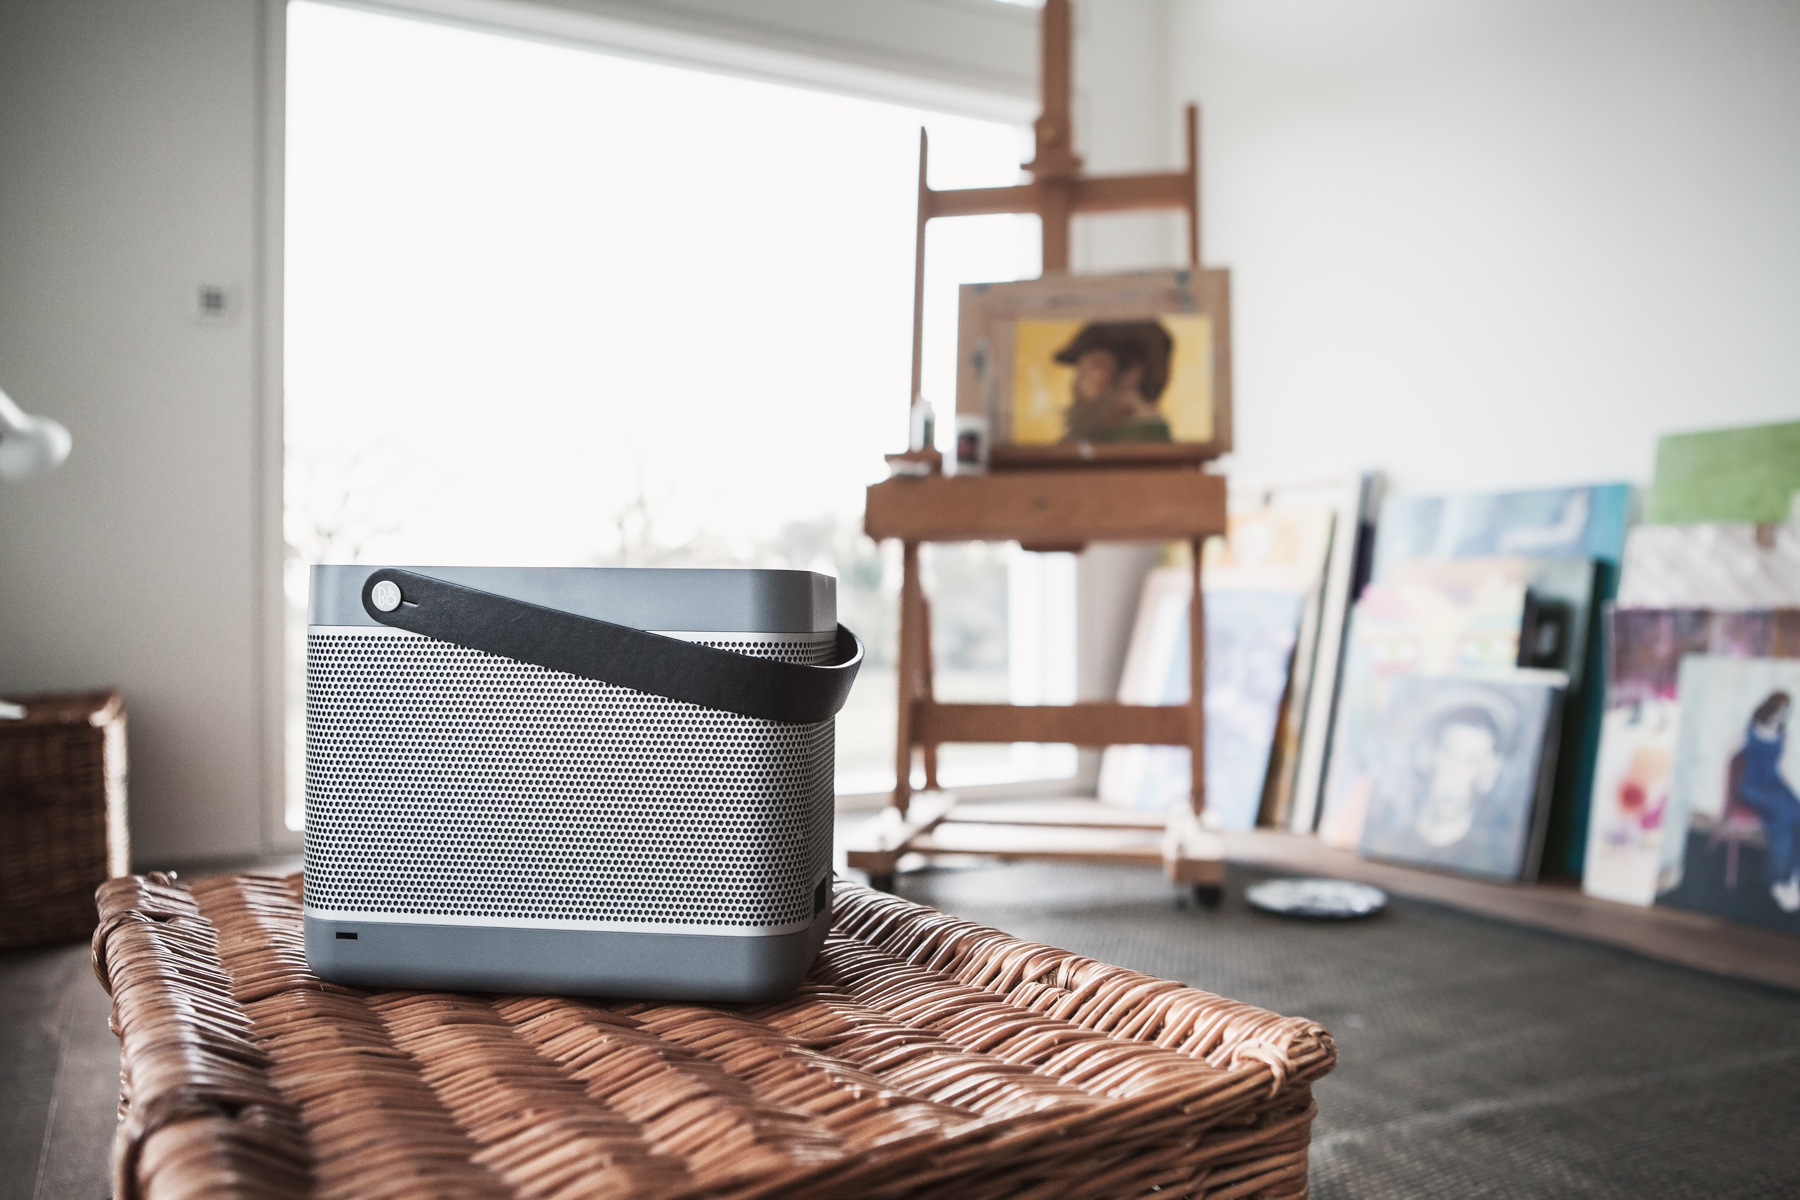 Bang and Olufsen 'Back to our Roots'